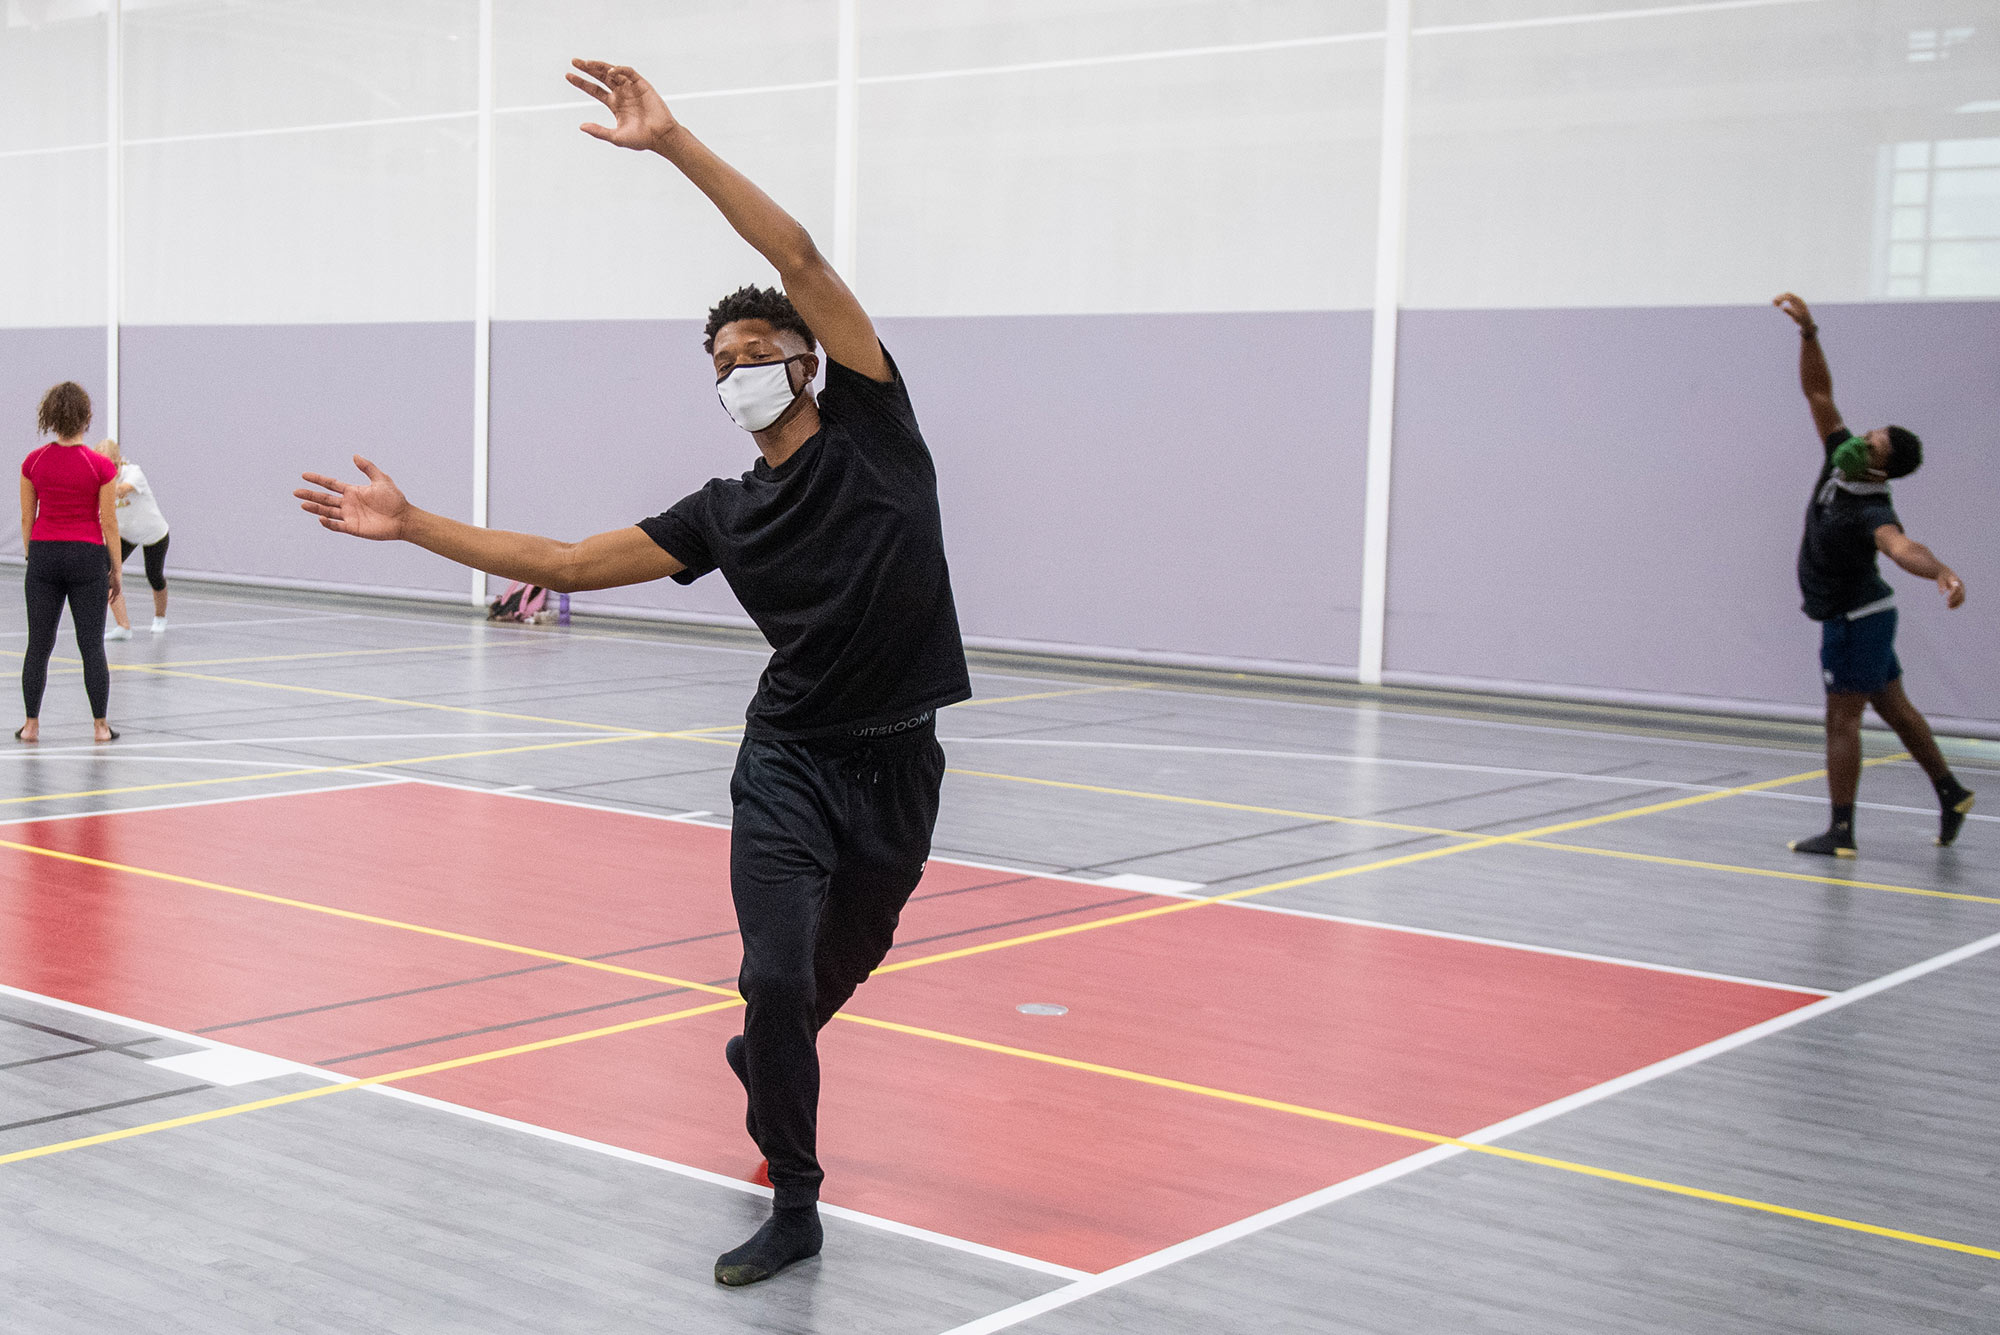 Photo of Bishop Edwards (CFA'23) moving within his 14-foot square during instructor Liz Roncka's improv dance class at FitRec September 3. The yellow tape grid is there to ensure physical distancing. Bishop raises both his hands in the air gracefully and wears a blue mask.